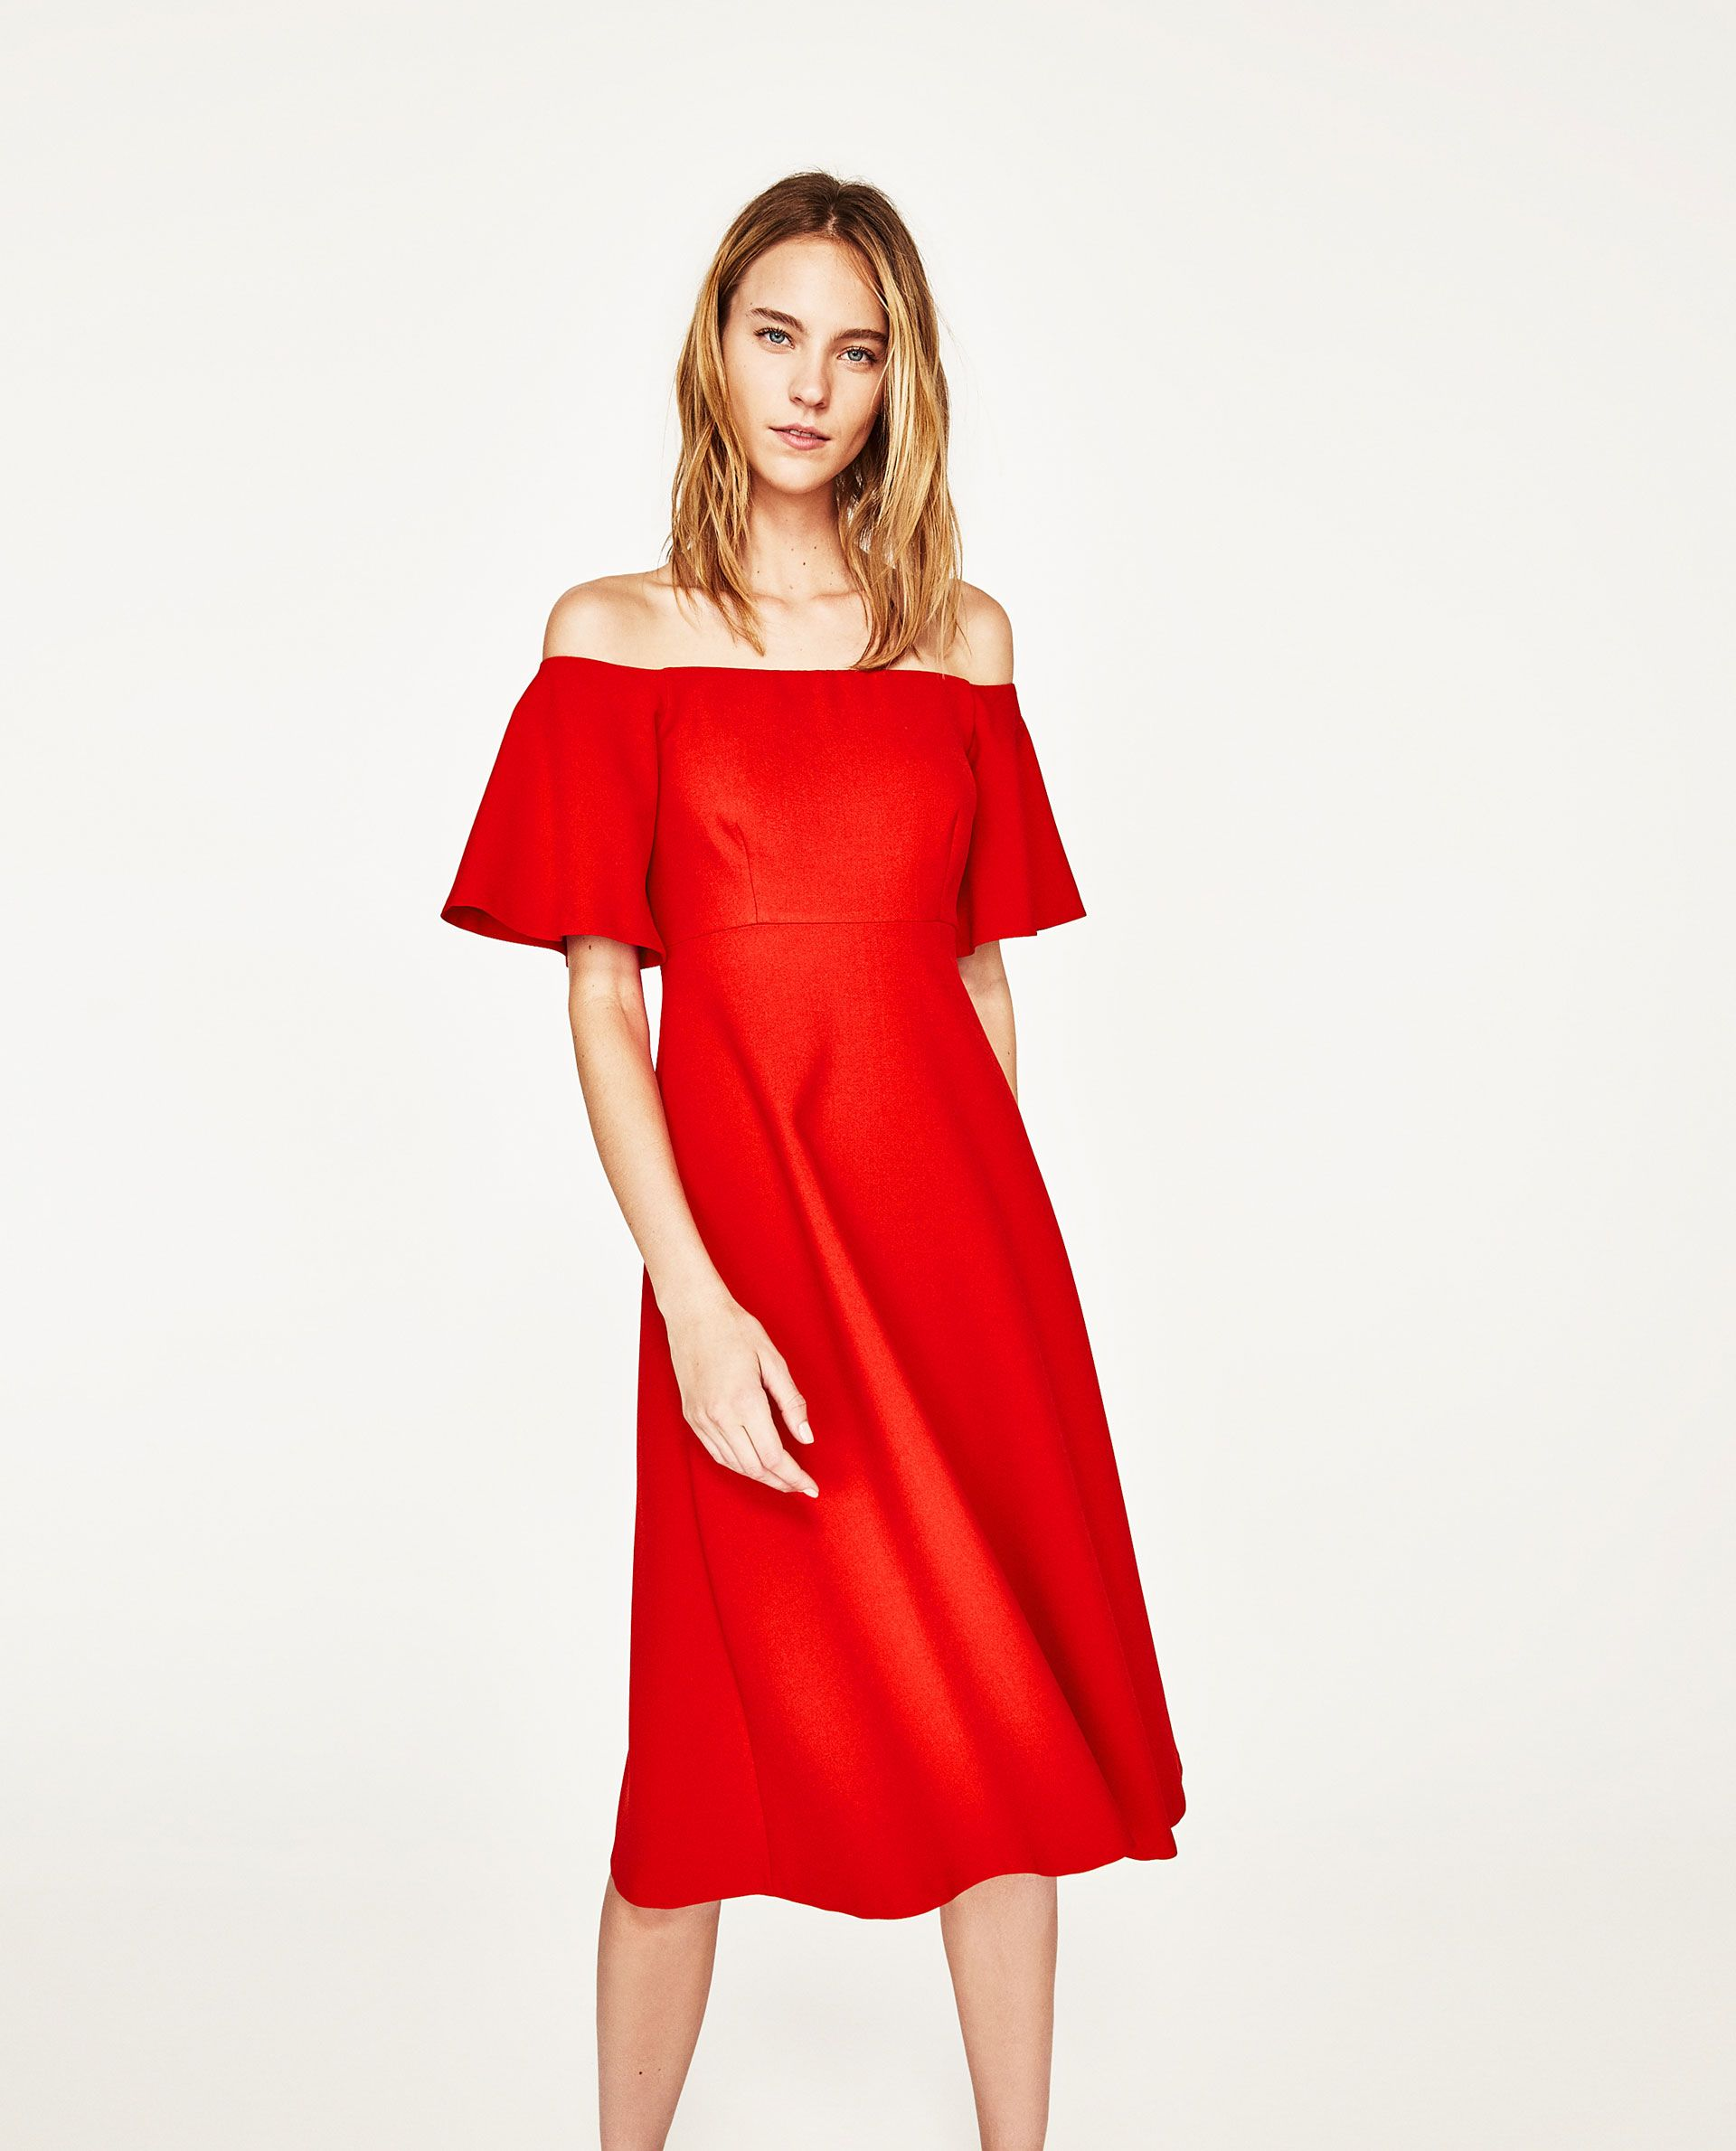 83349bfc6b0 OFF-THE-SHOULDER DRESS | Zara | Dresses, Zara, Shoulder dress